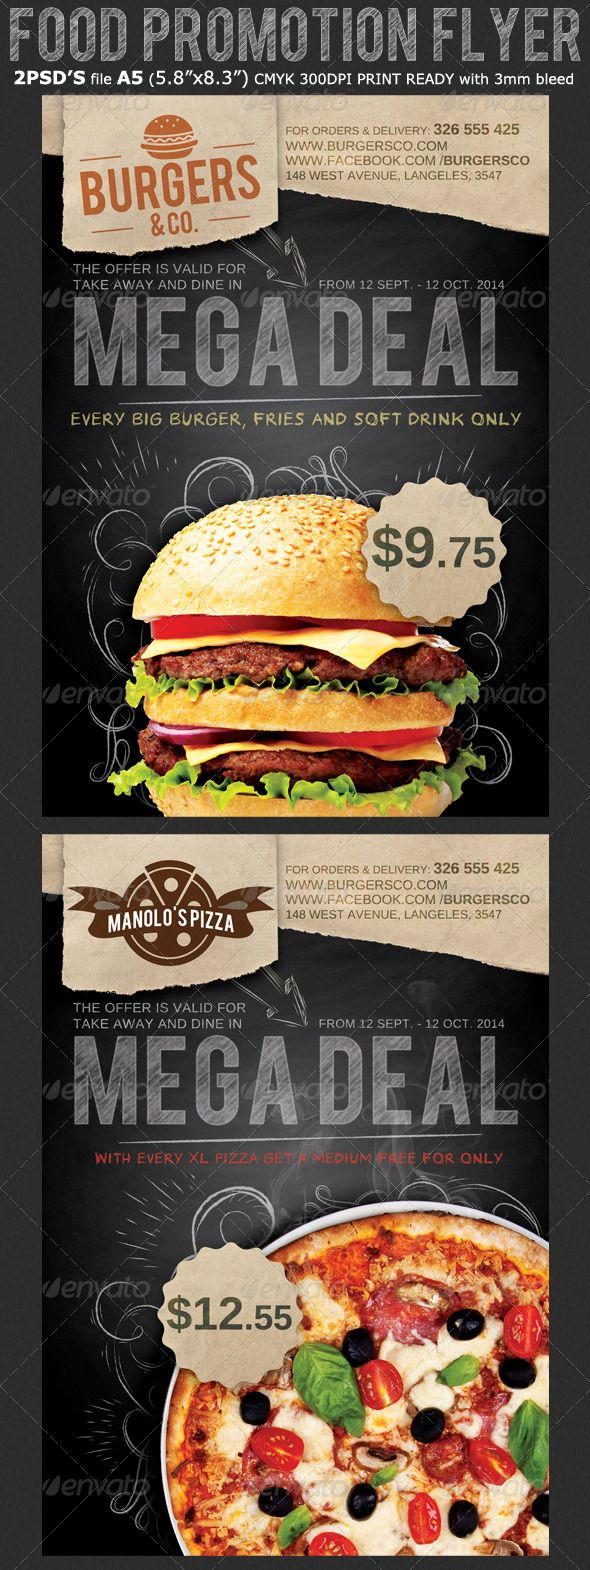 restaurant food promotion flyer template pizza restaurant and restaurant food promotion flyer template psd buy and